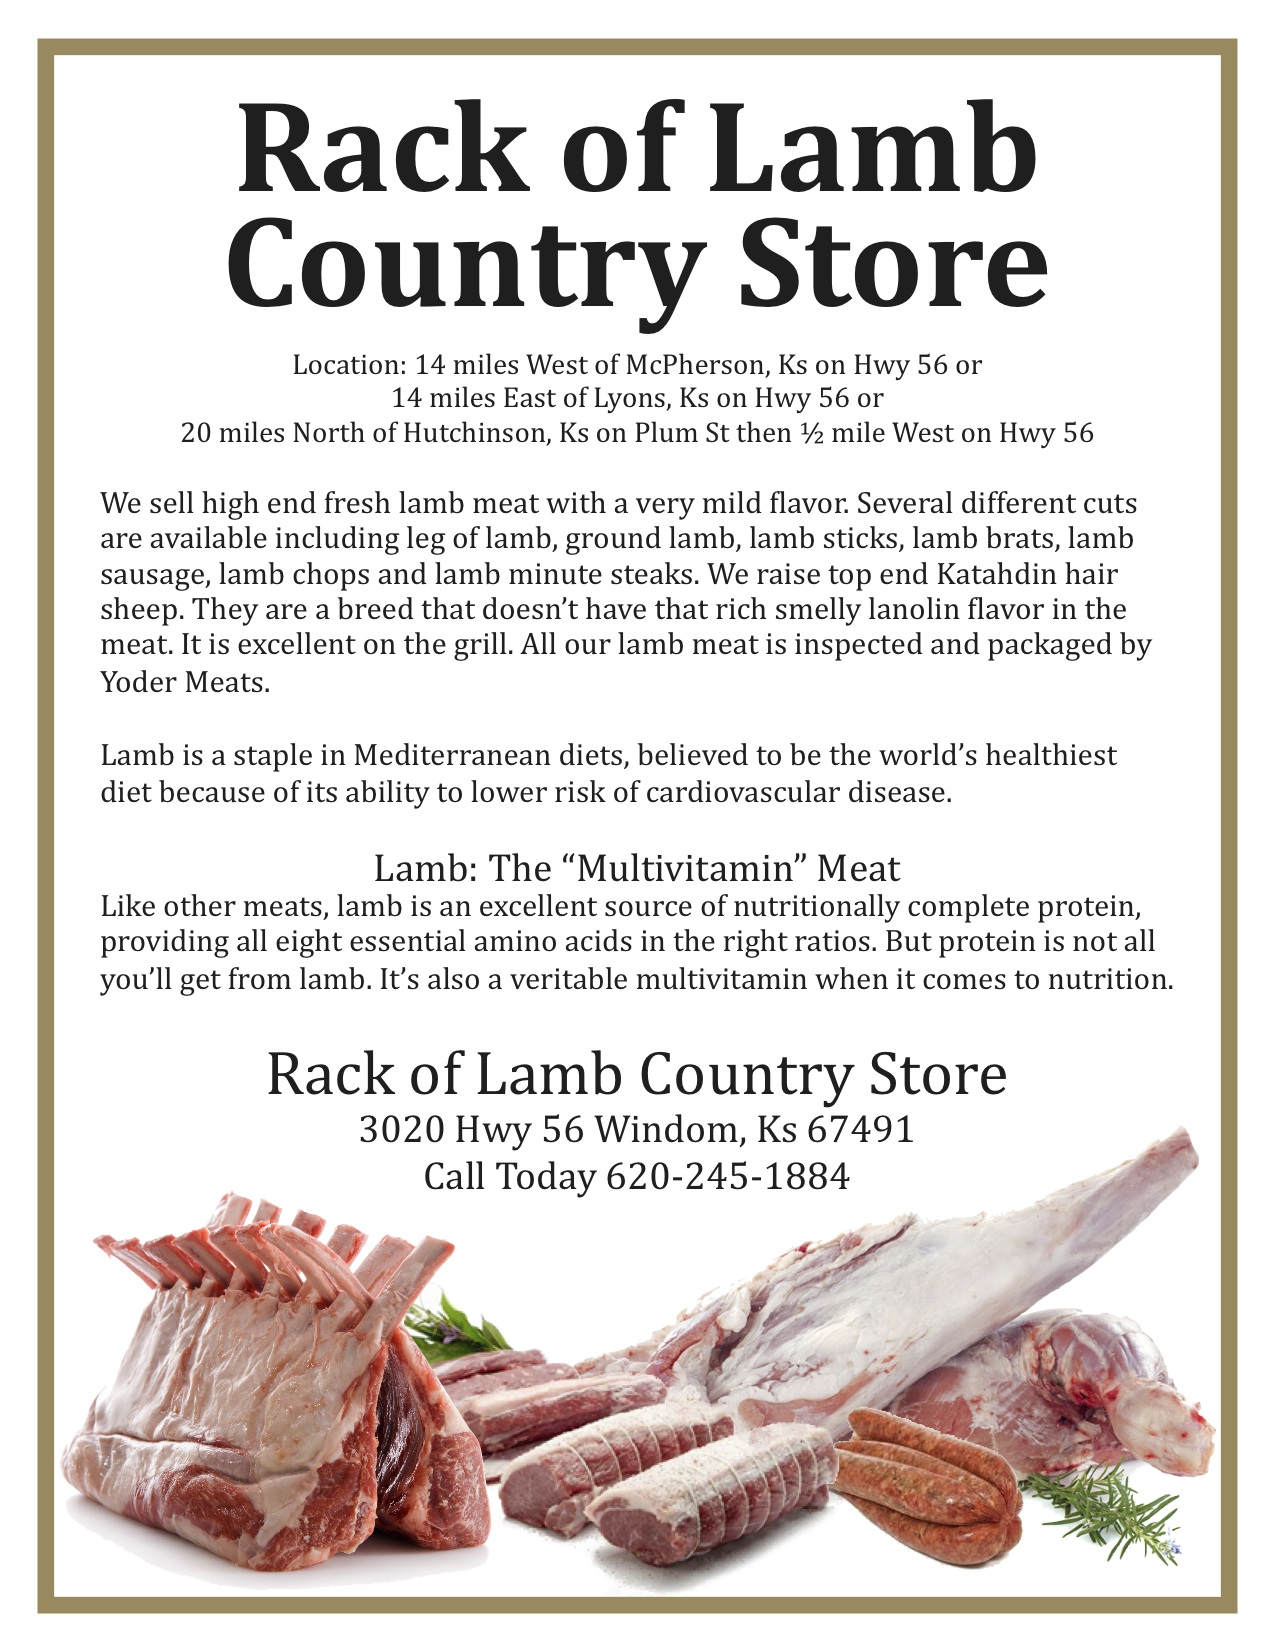 Rack of Lamb Country Store